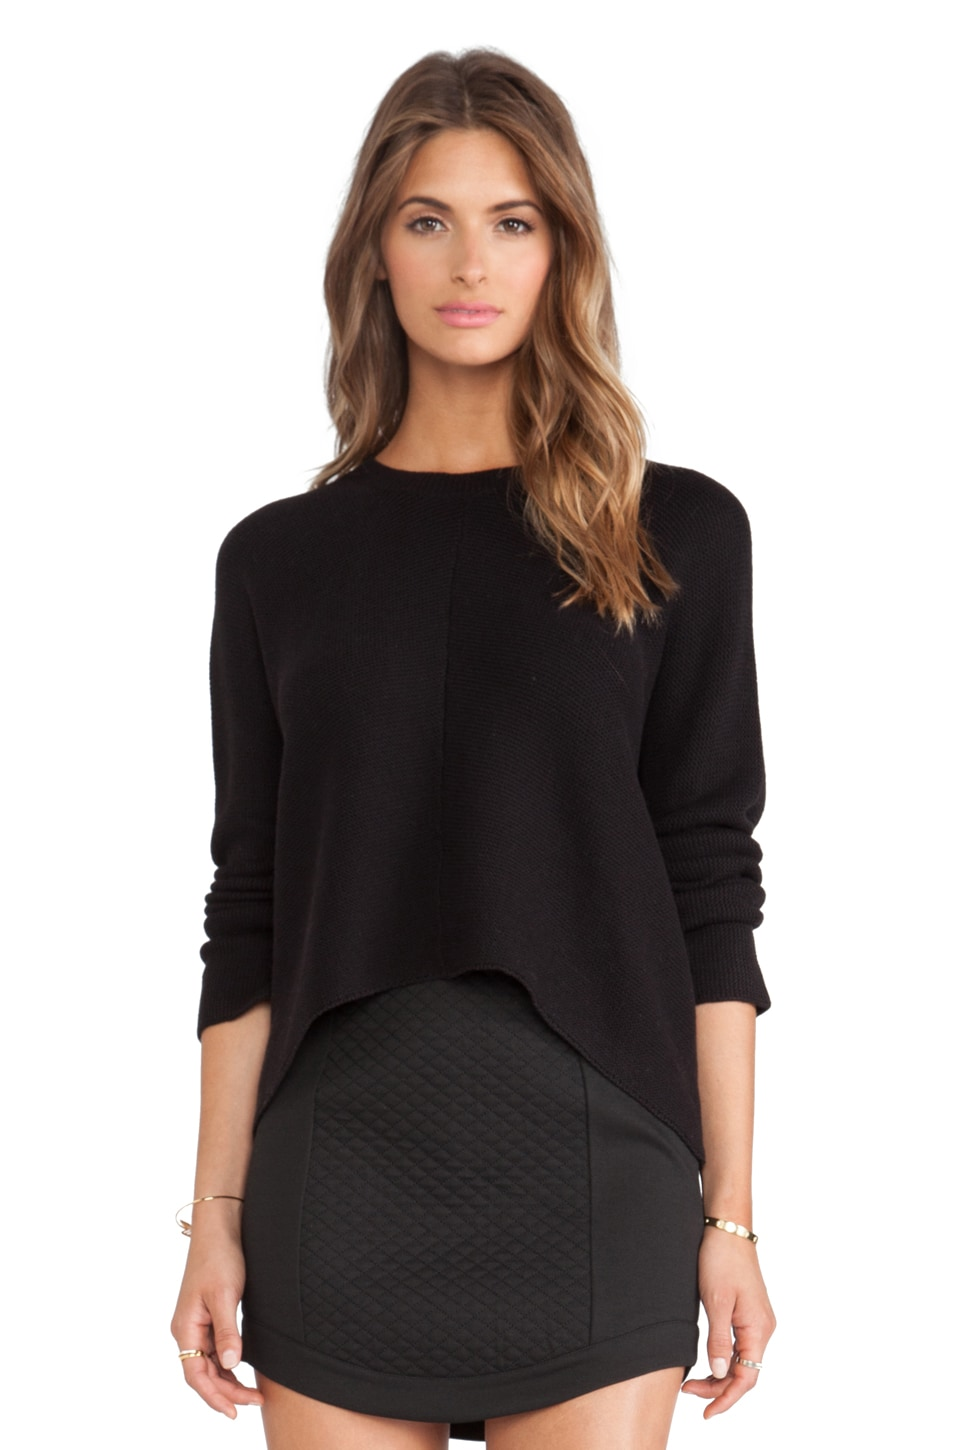 BCBGeneration Link Stitch Sweater in Black